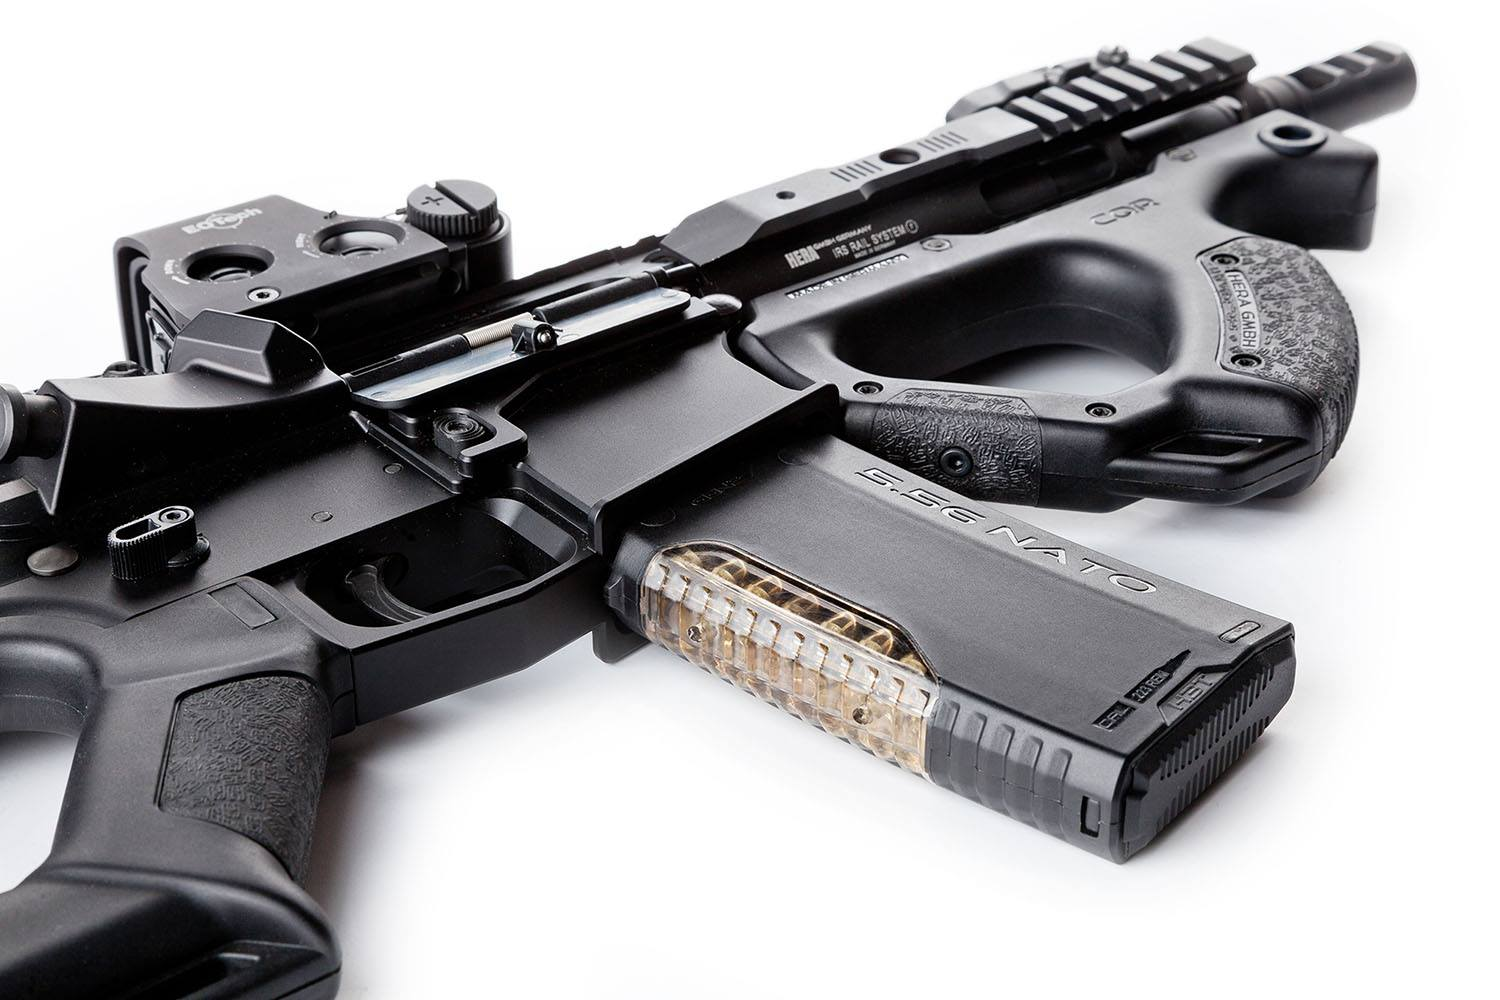 Hera arms cqr page 1 ar15 com - New Ar Magazines From Hera Arms Plus Prices For The Cqr Stock And Grip The Firearm Blogthe Firearm Blog